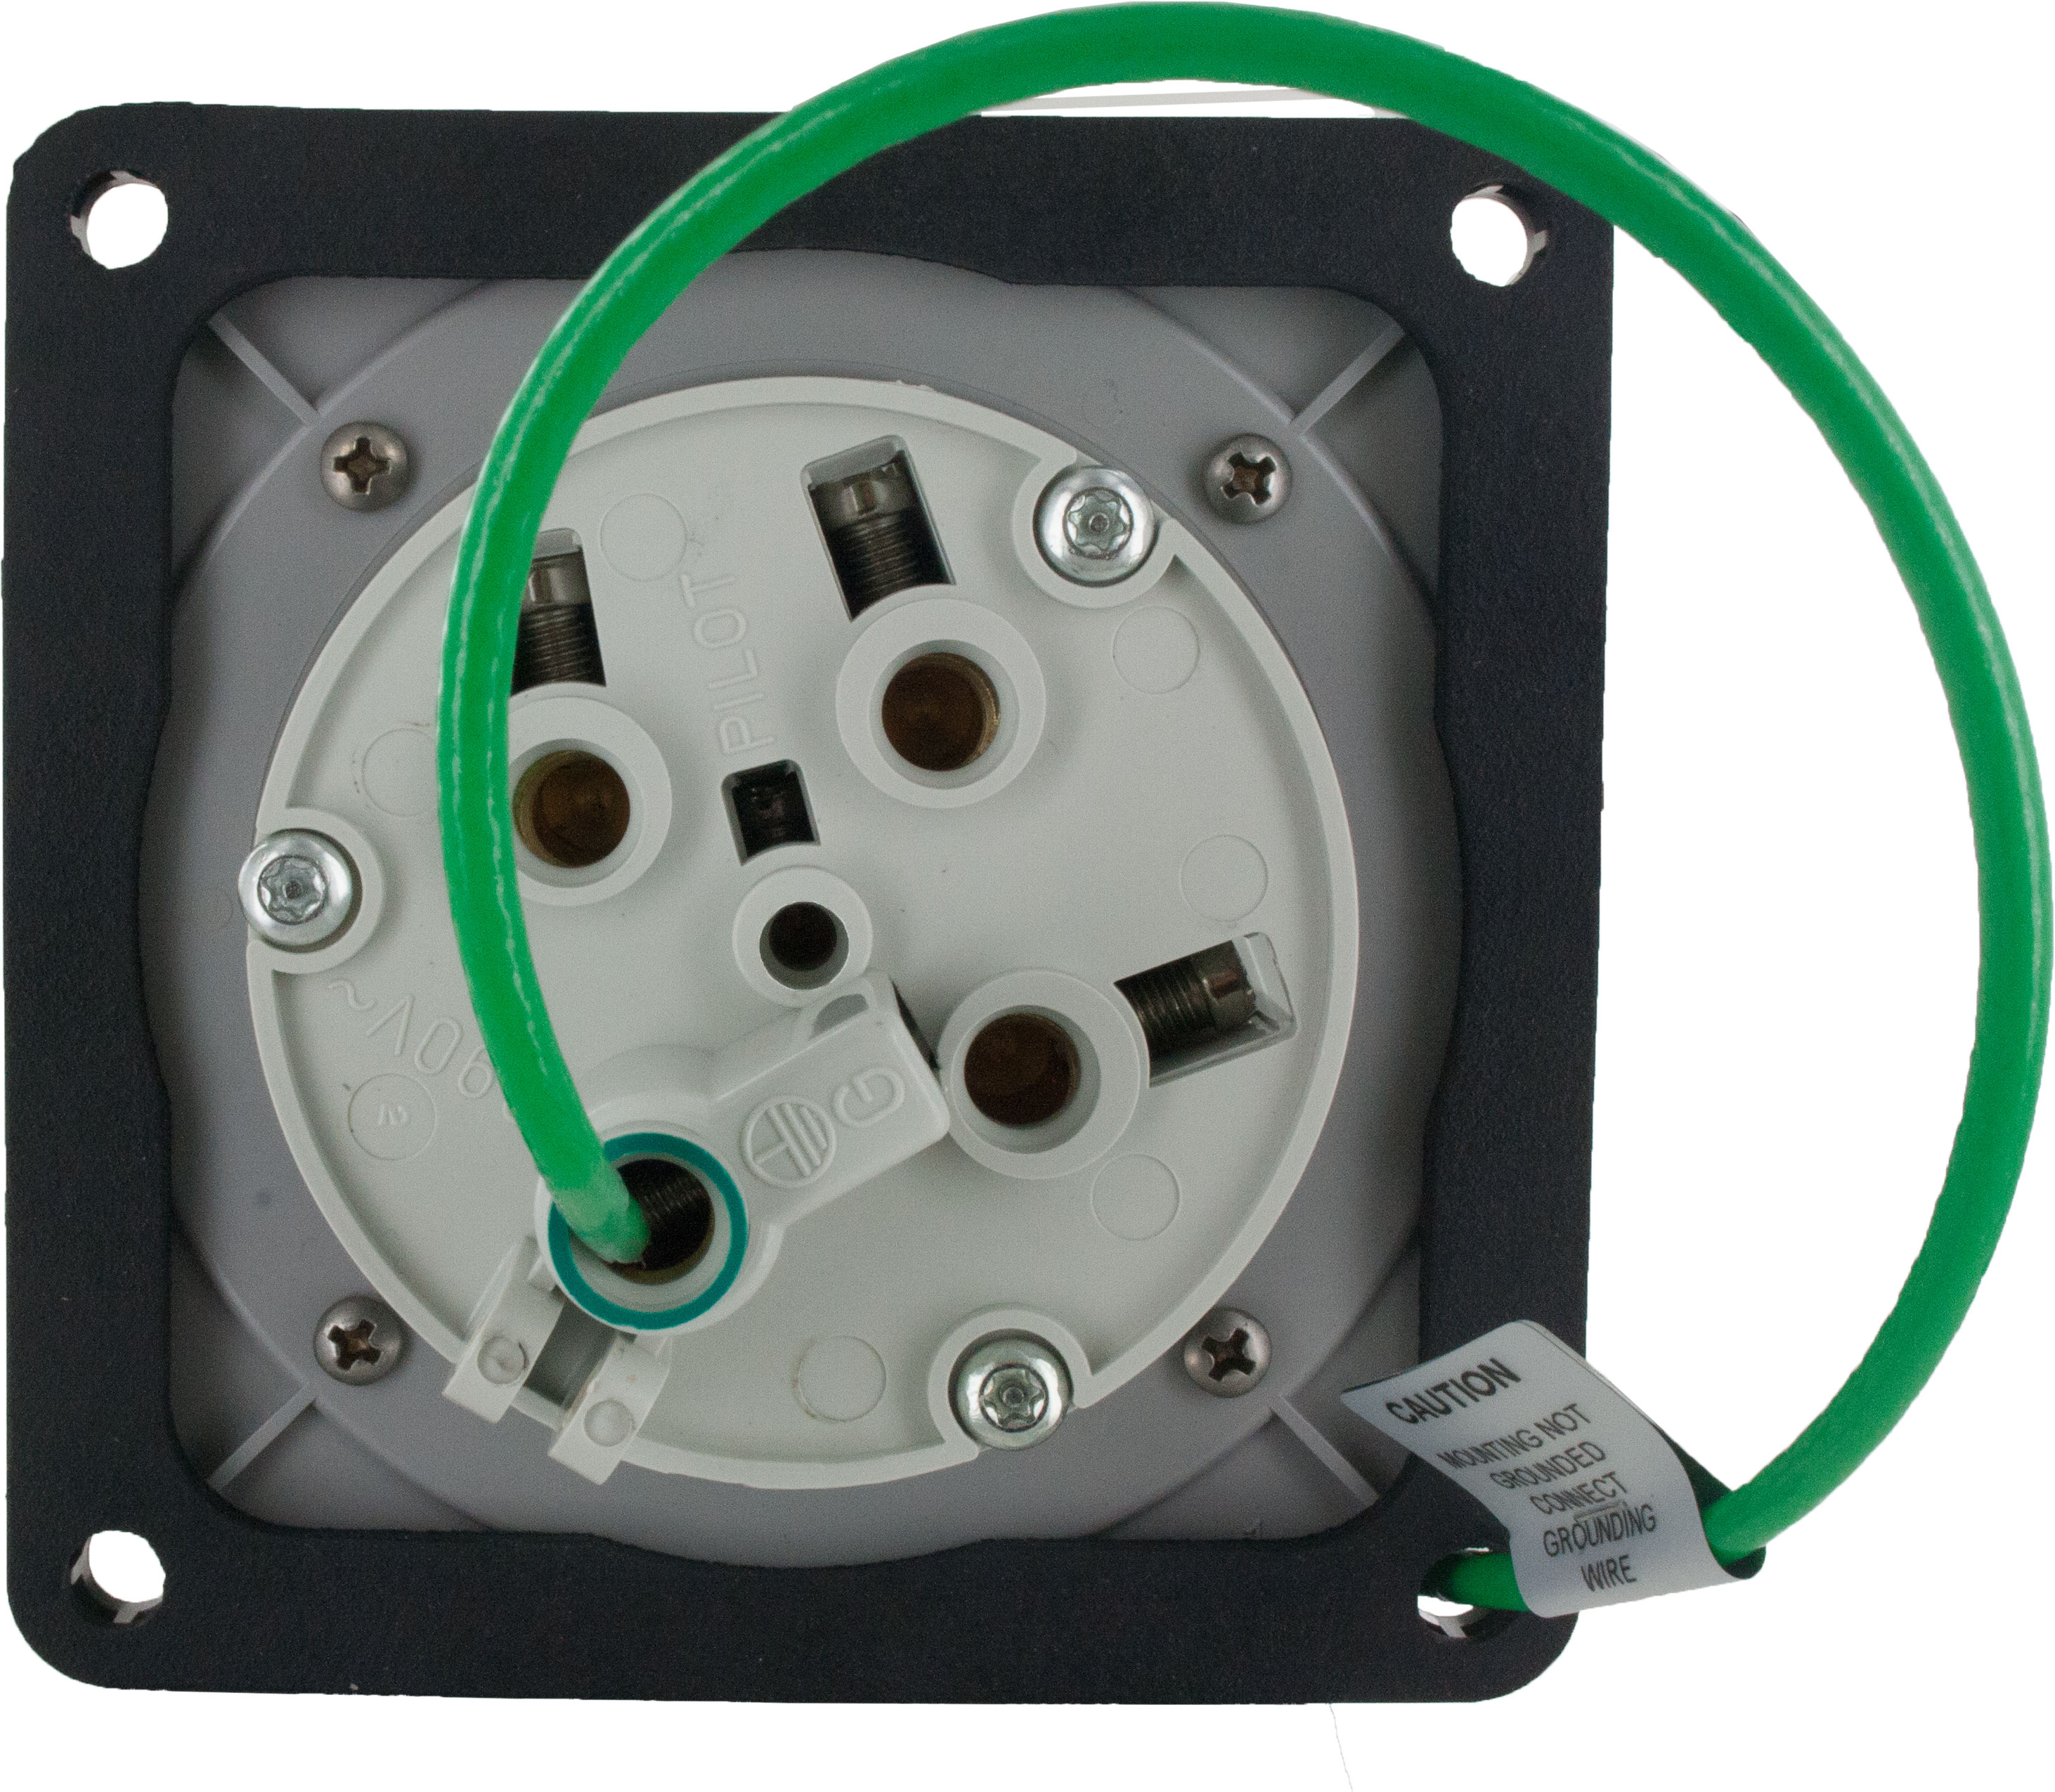 460R5W Pin And Sleeve Receptacle 60 Amp 3 Pole 4 Wire | ElecDirect